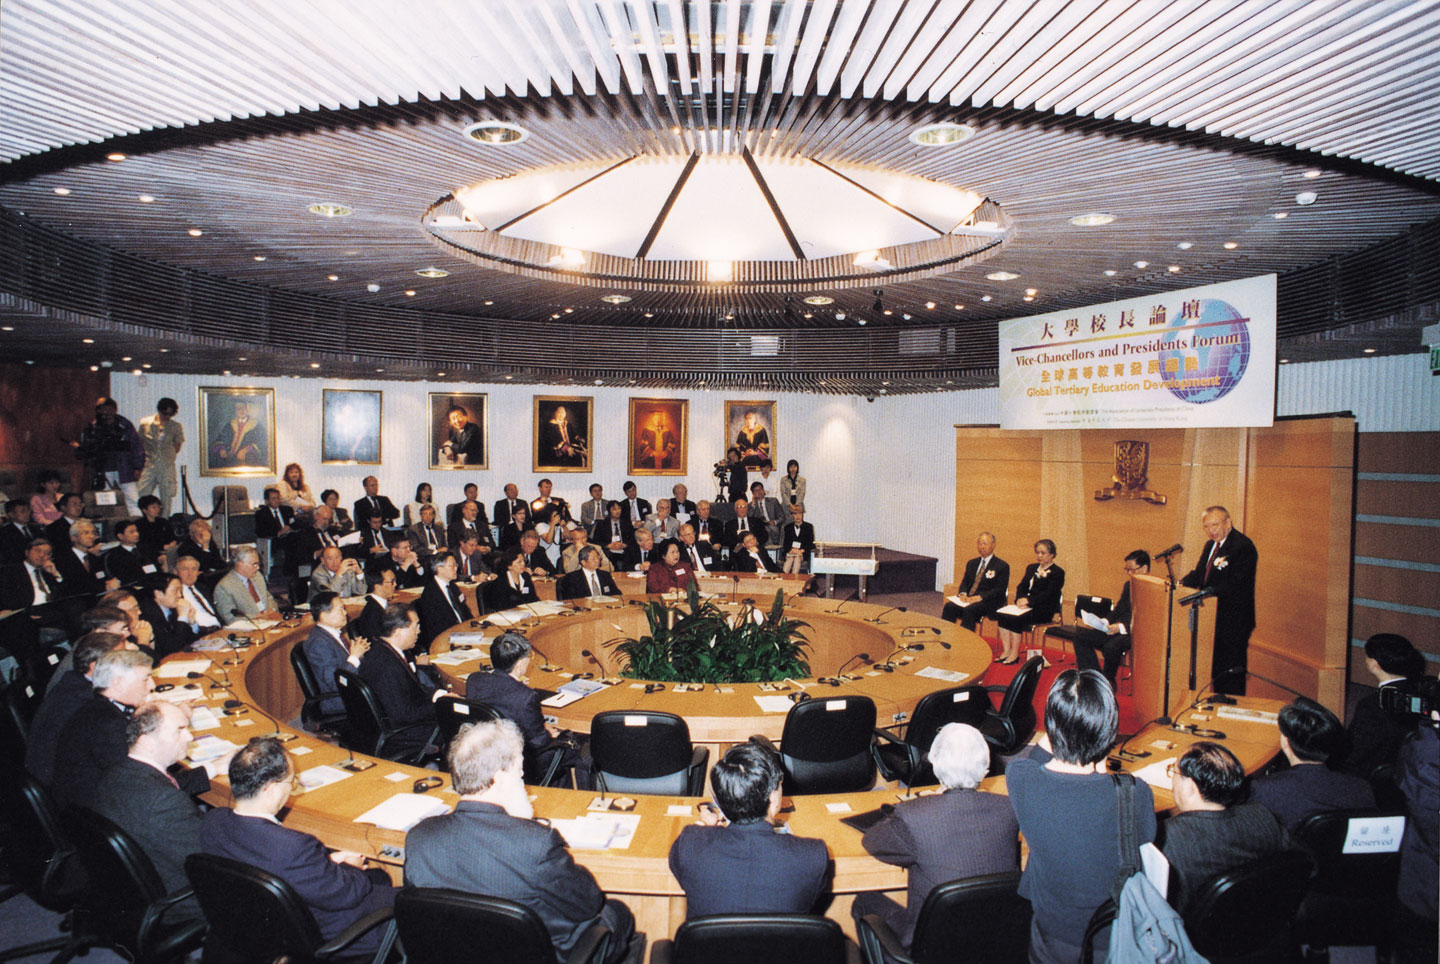 The University Presidents' Global Forum (1999)